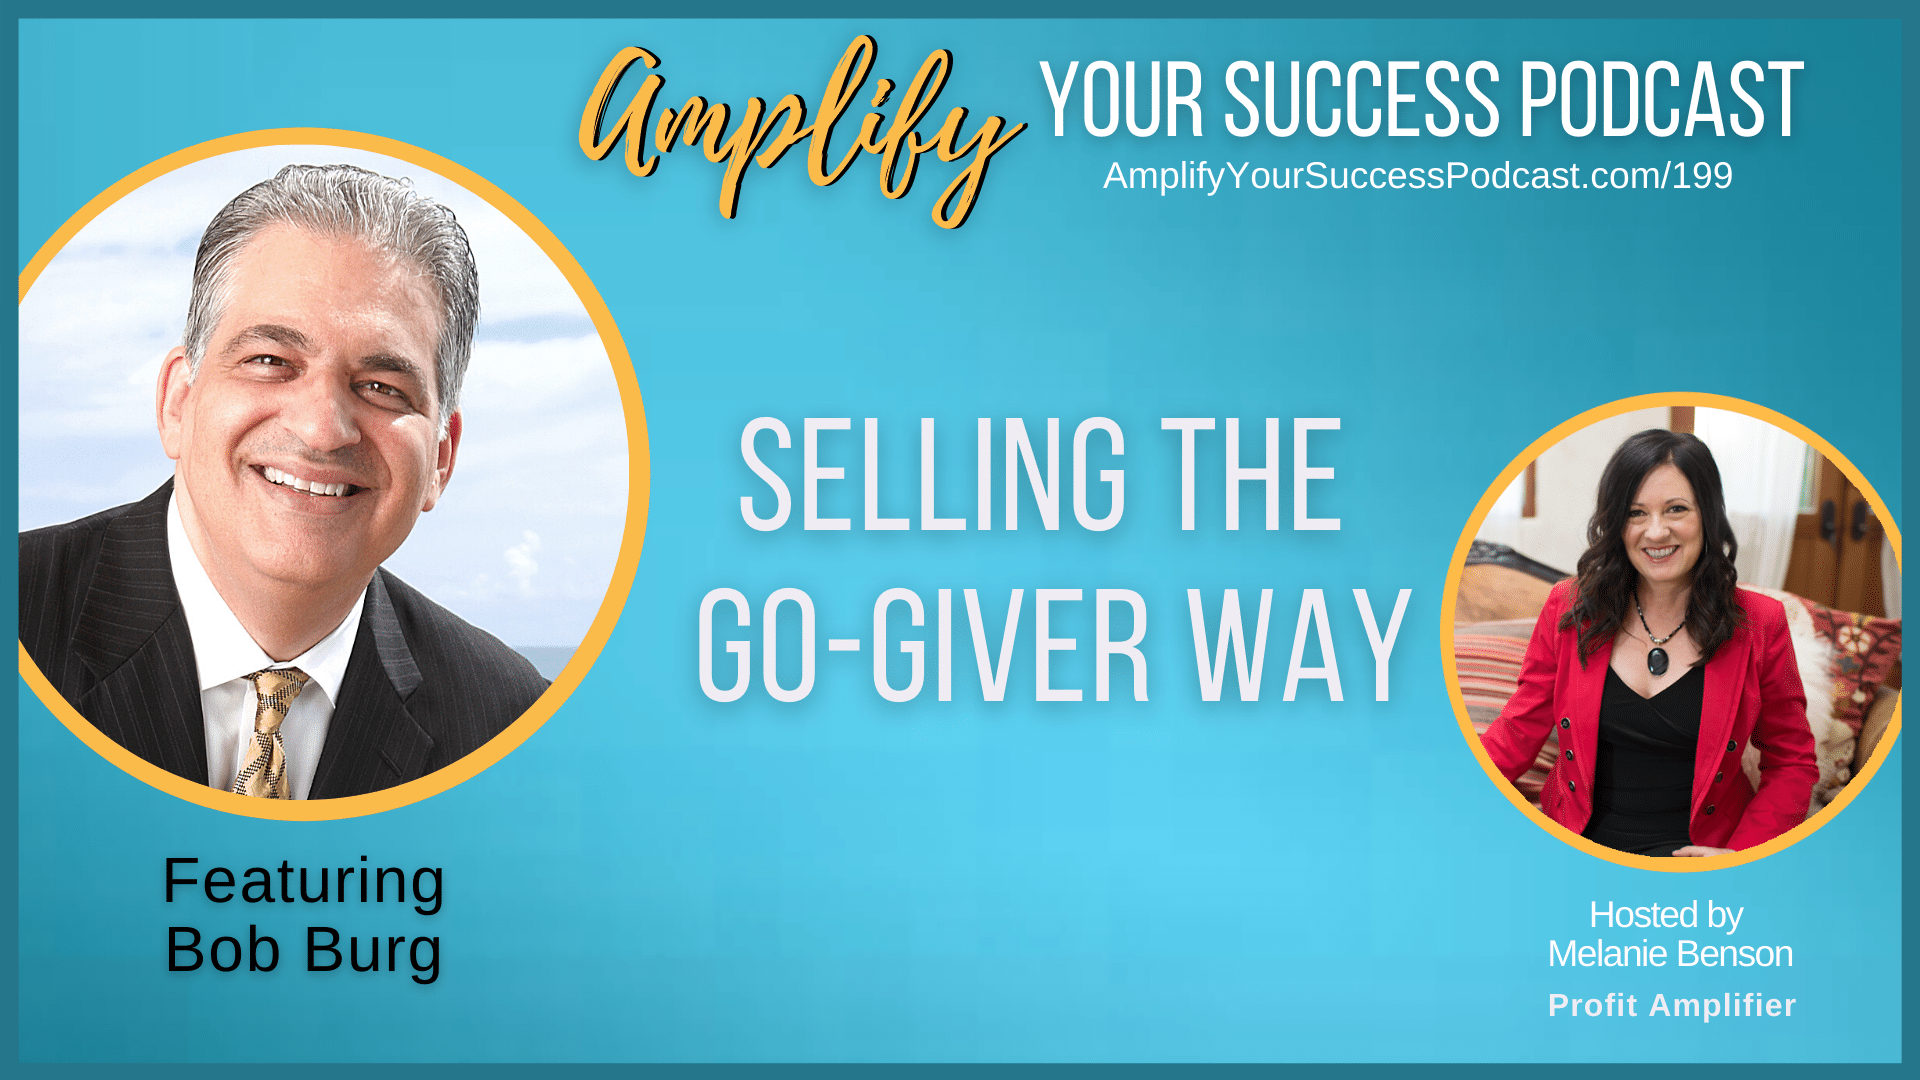 Selling The Go-Giver Way with Bob Burg